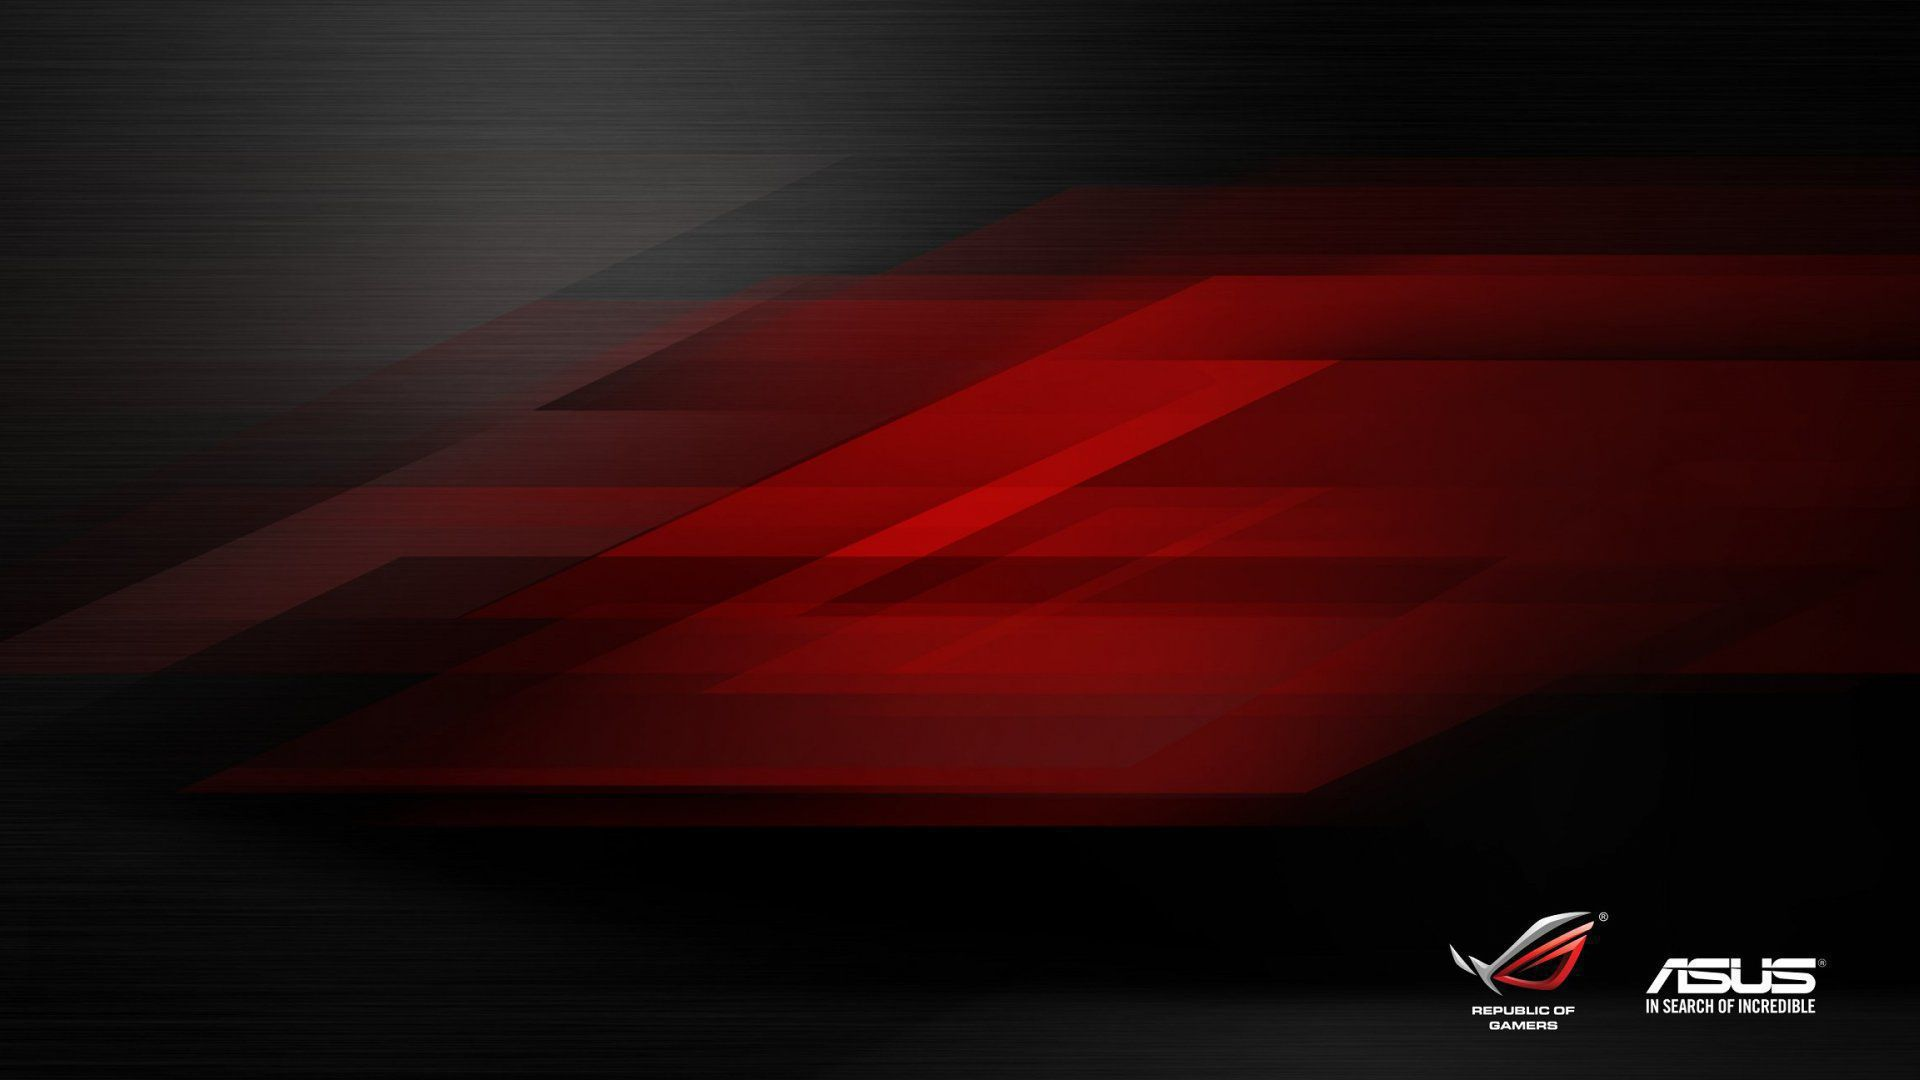 Asus High Quality Wallpapers